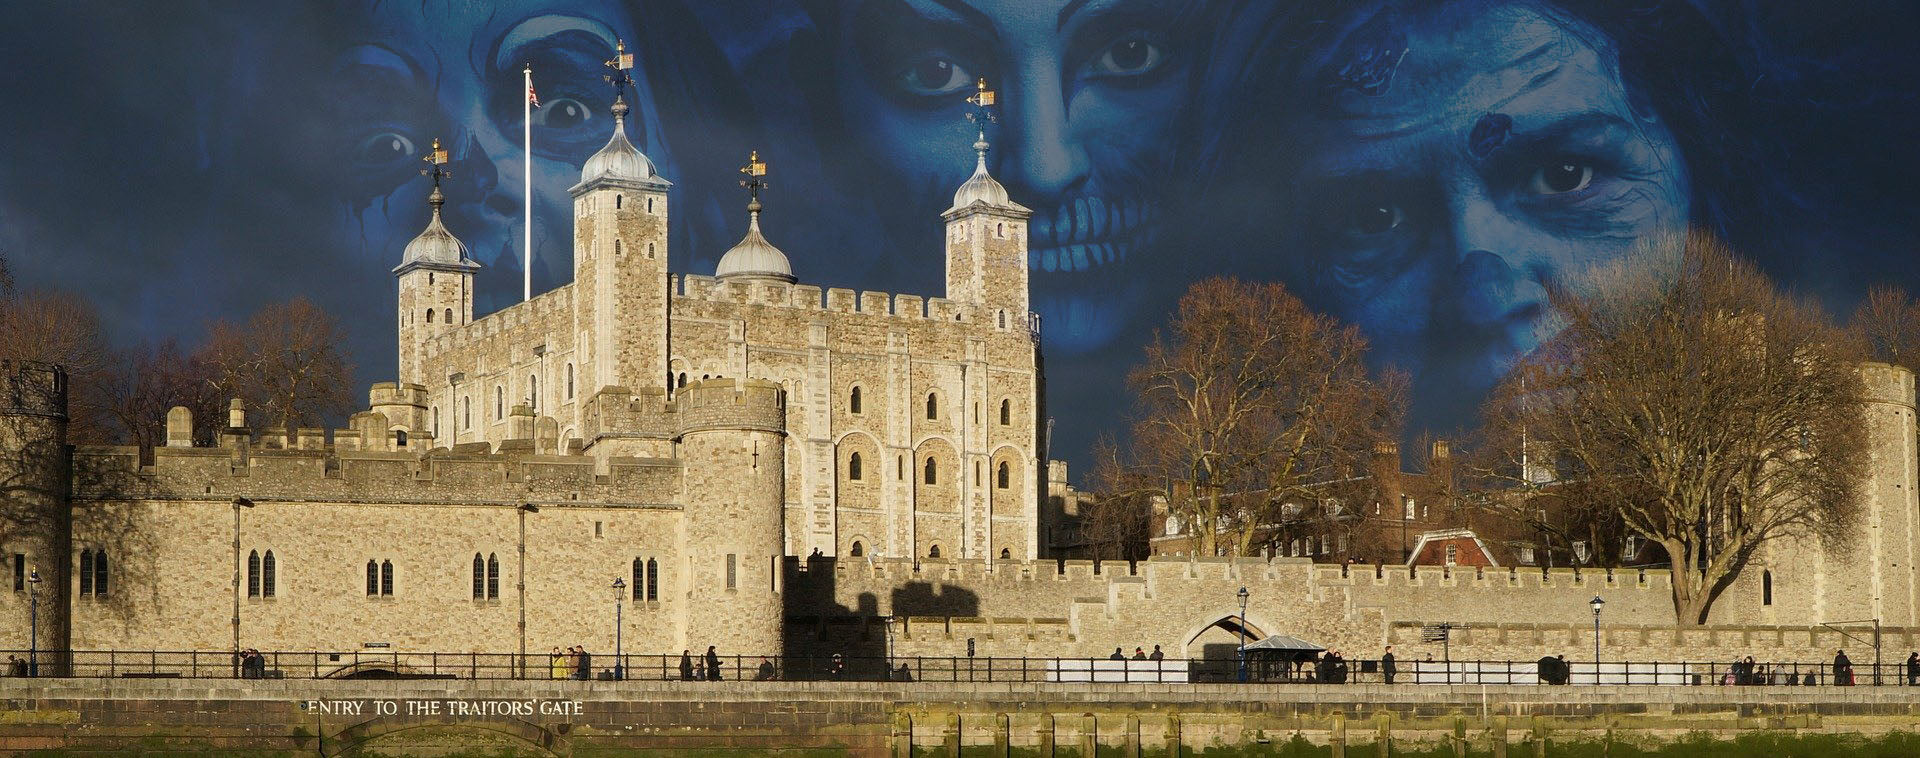 Quirky Treasure Trails - Walk in the footsteps of Dick Whittington along the riverside of the Thames as you search for clues...